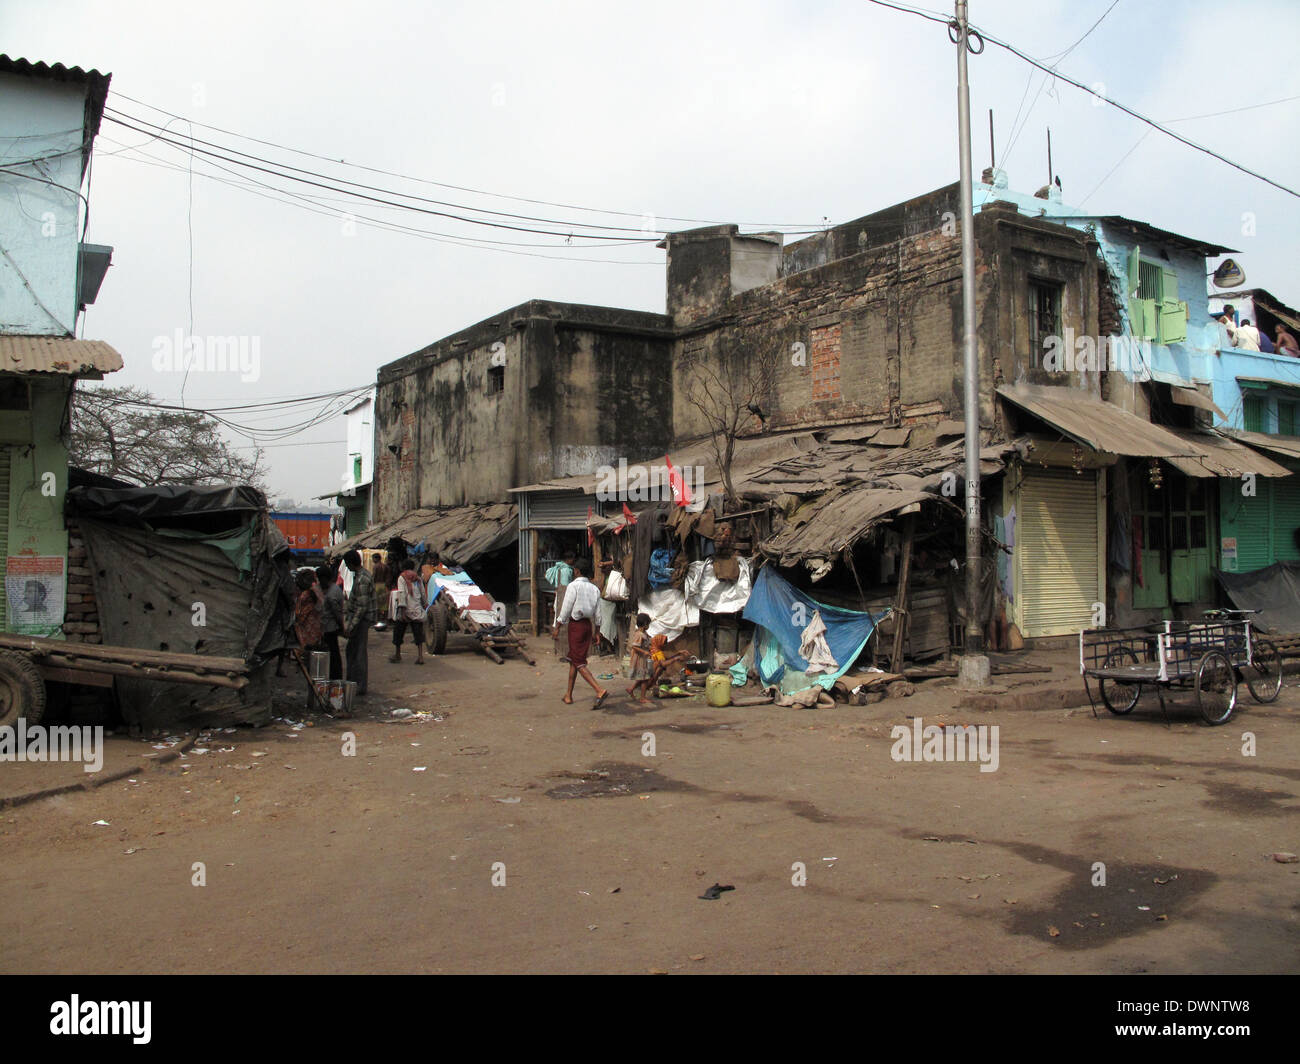 Streets of Kolkata. Poor Indian family living in a makeshift shack by the side of the road Stock Photo